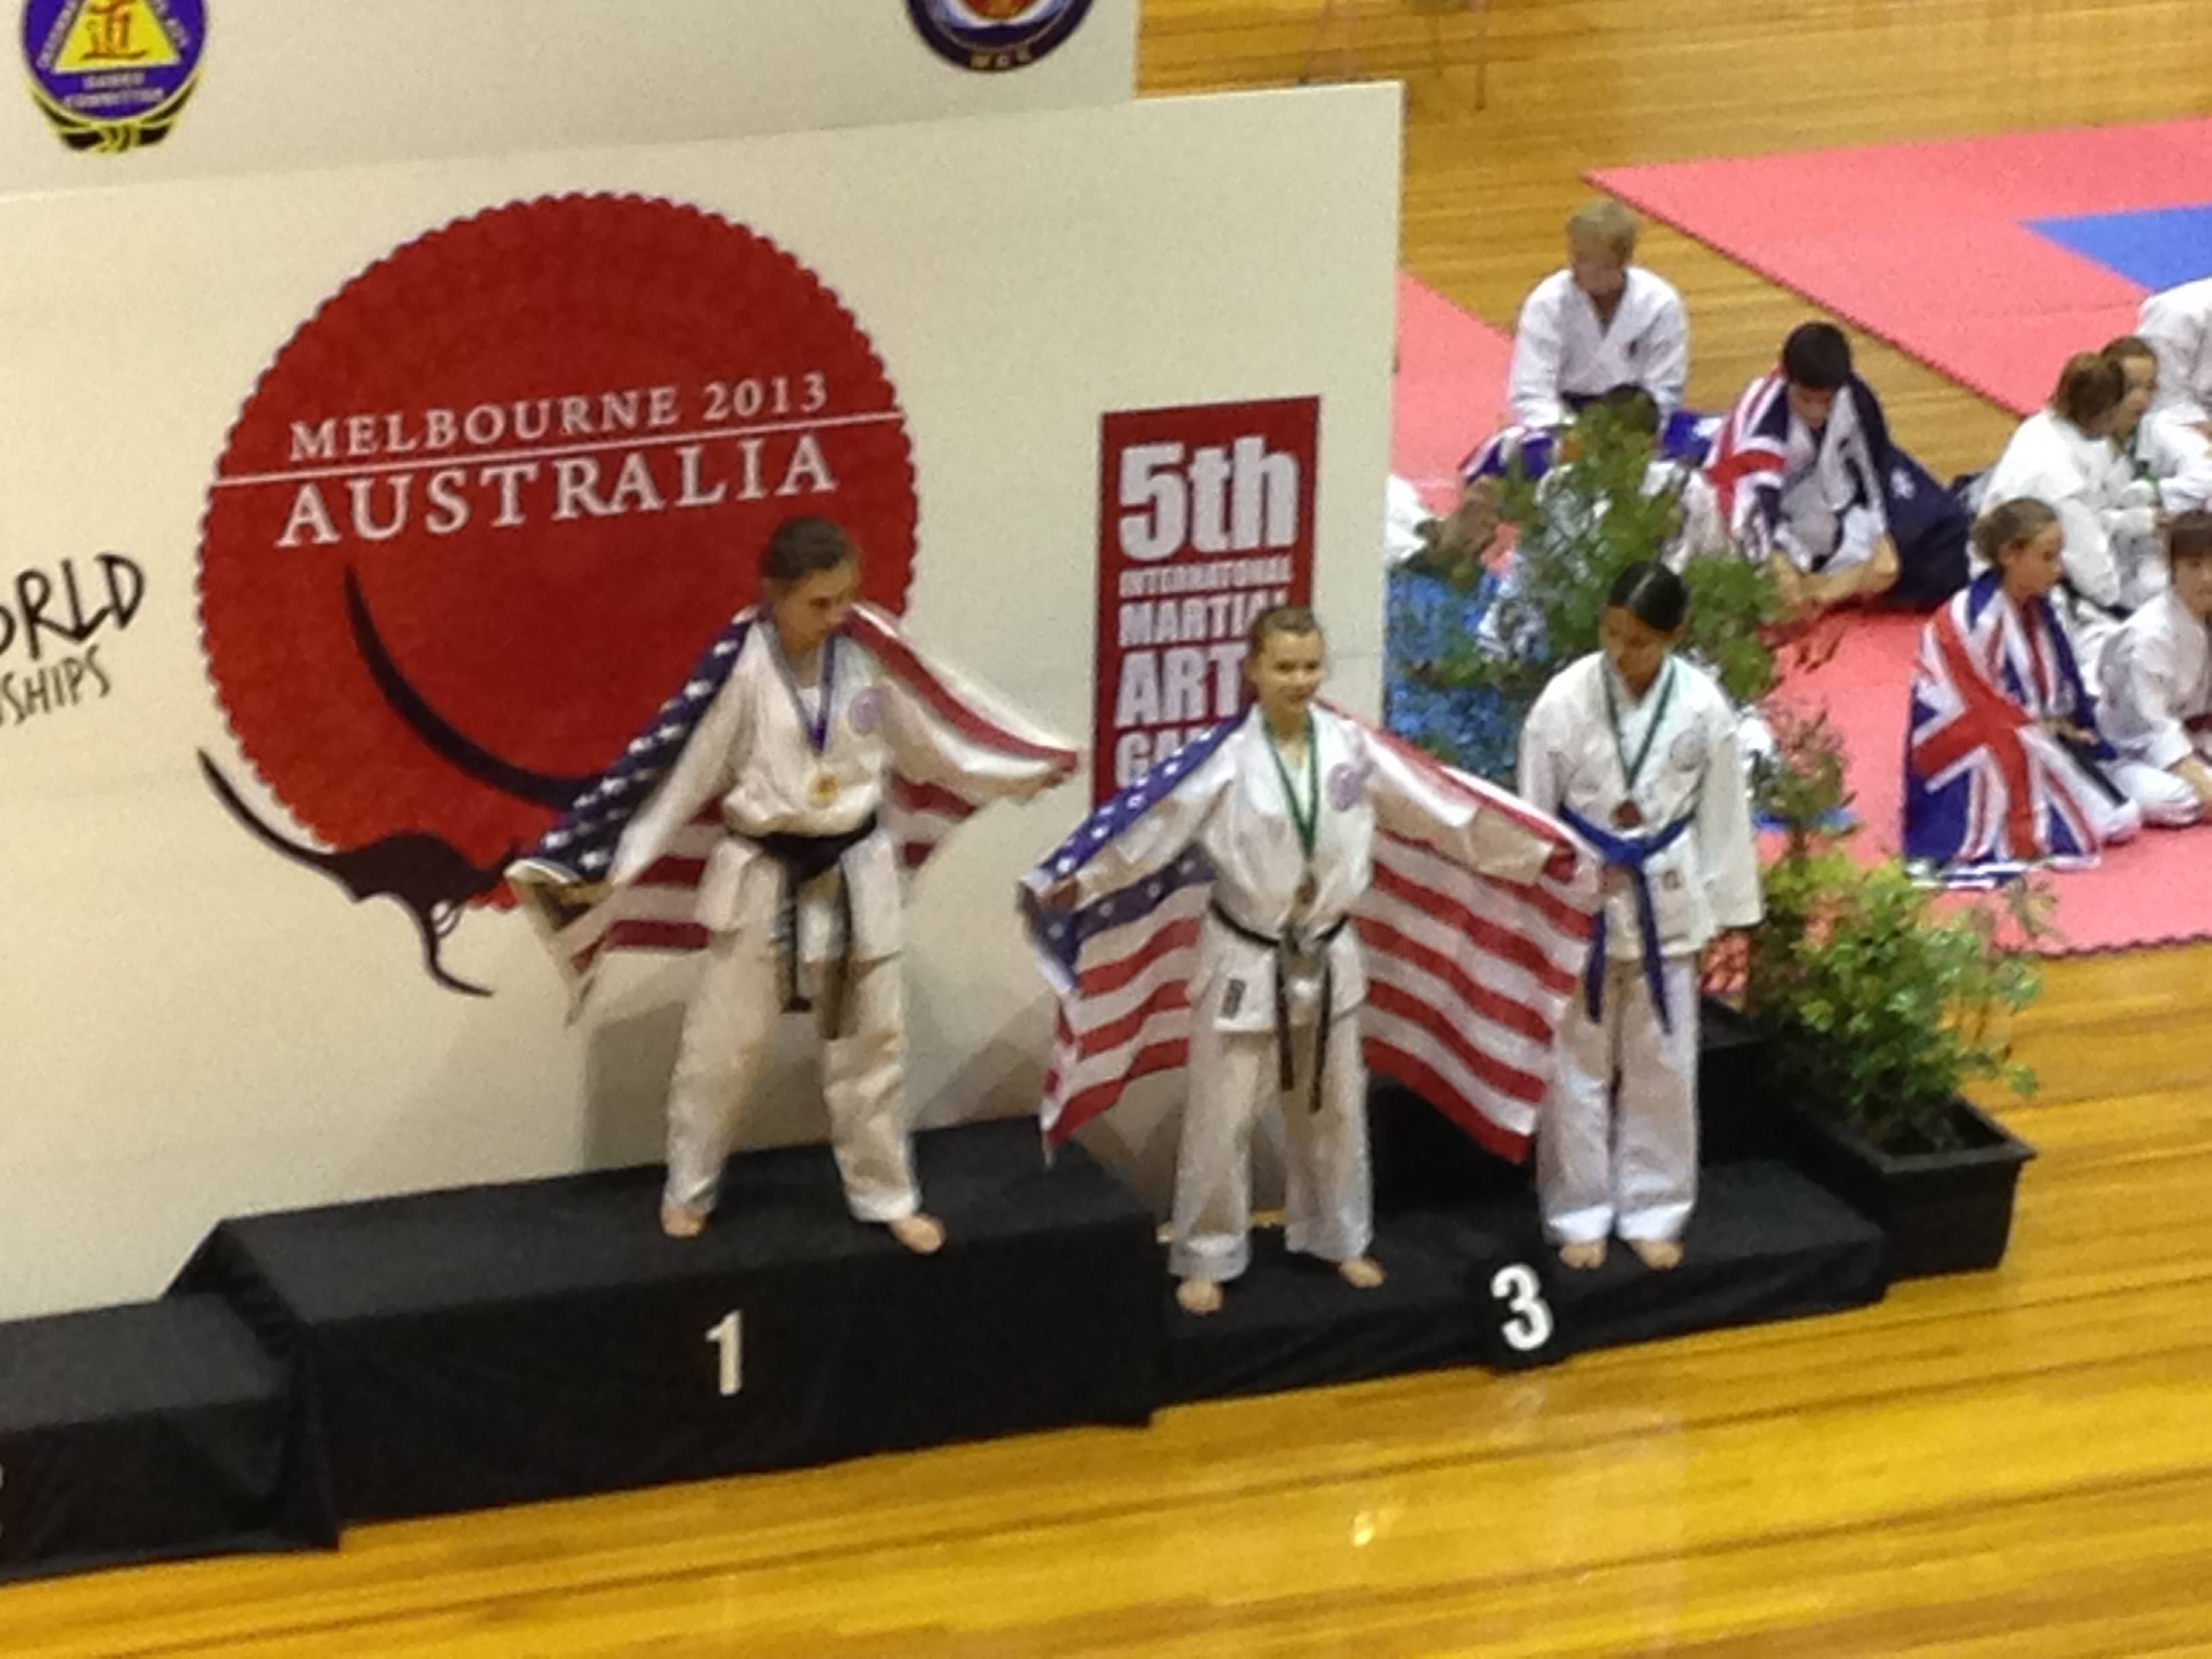 Rebecca Fishman stands on the gold-medal platform draped in the United States flag after winning the 13-year-old lightweight world championship in kumite (fighting). Fishman, who is a two-time world champion, having won the world championship in kumite in the 11-year-old division in Venice, Italy in 2010, also repeated her bronze medal performance in kata (form) from 2010 by capturing third place in the world championships in Melbourne in that event.